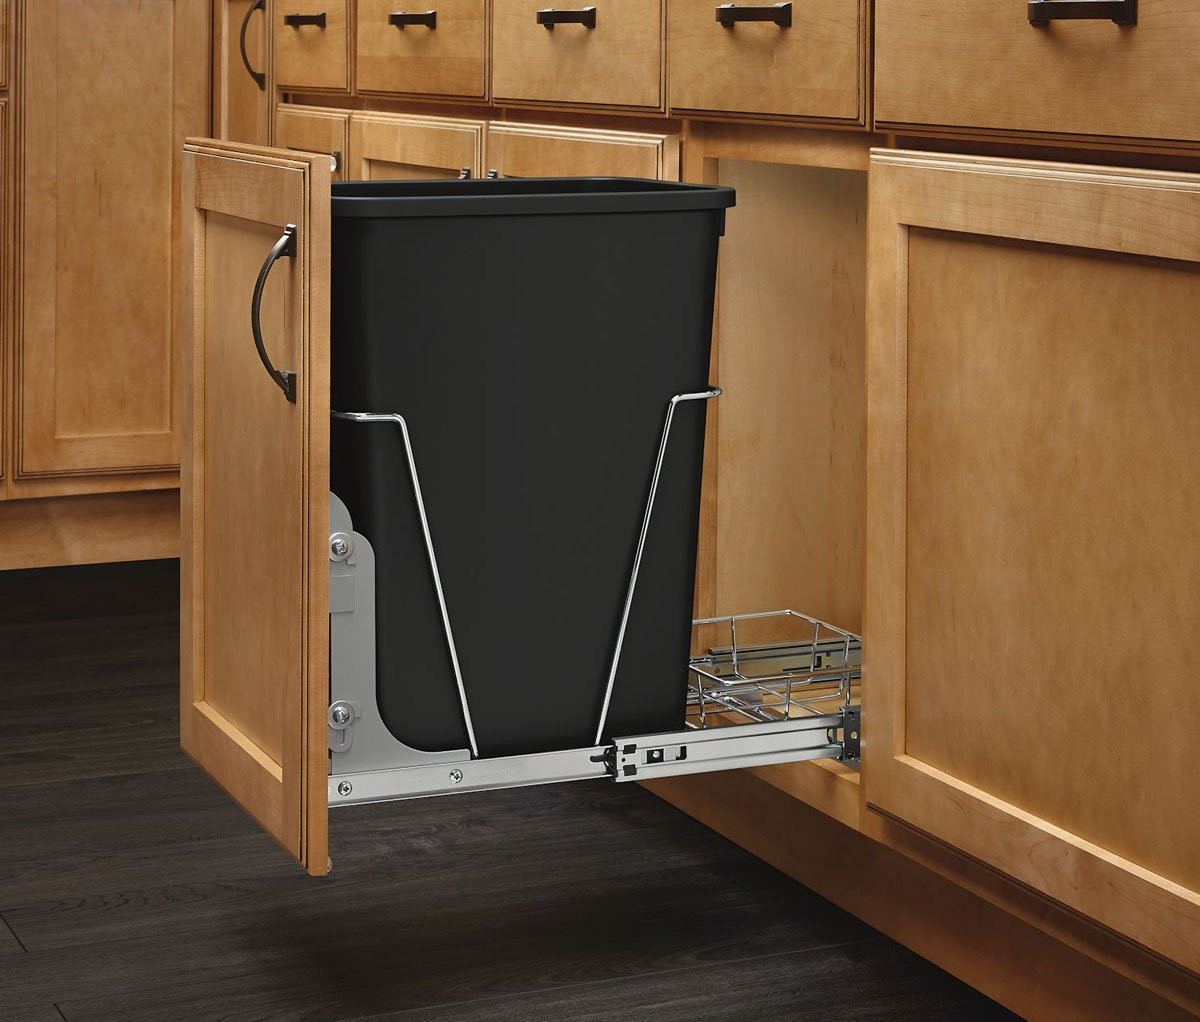 kitchen trash can in cabinet pull out hiding black container waste disposal bin ebay. Black Bedroom Furniture Sets. Home Design Ideas